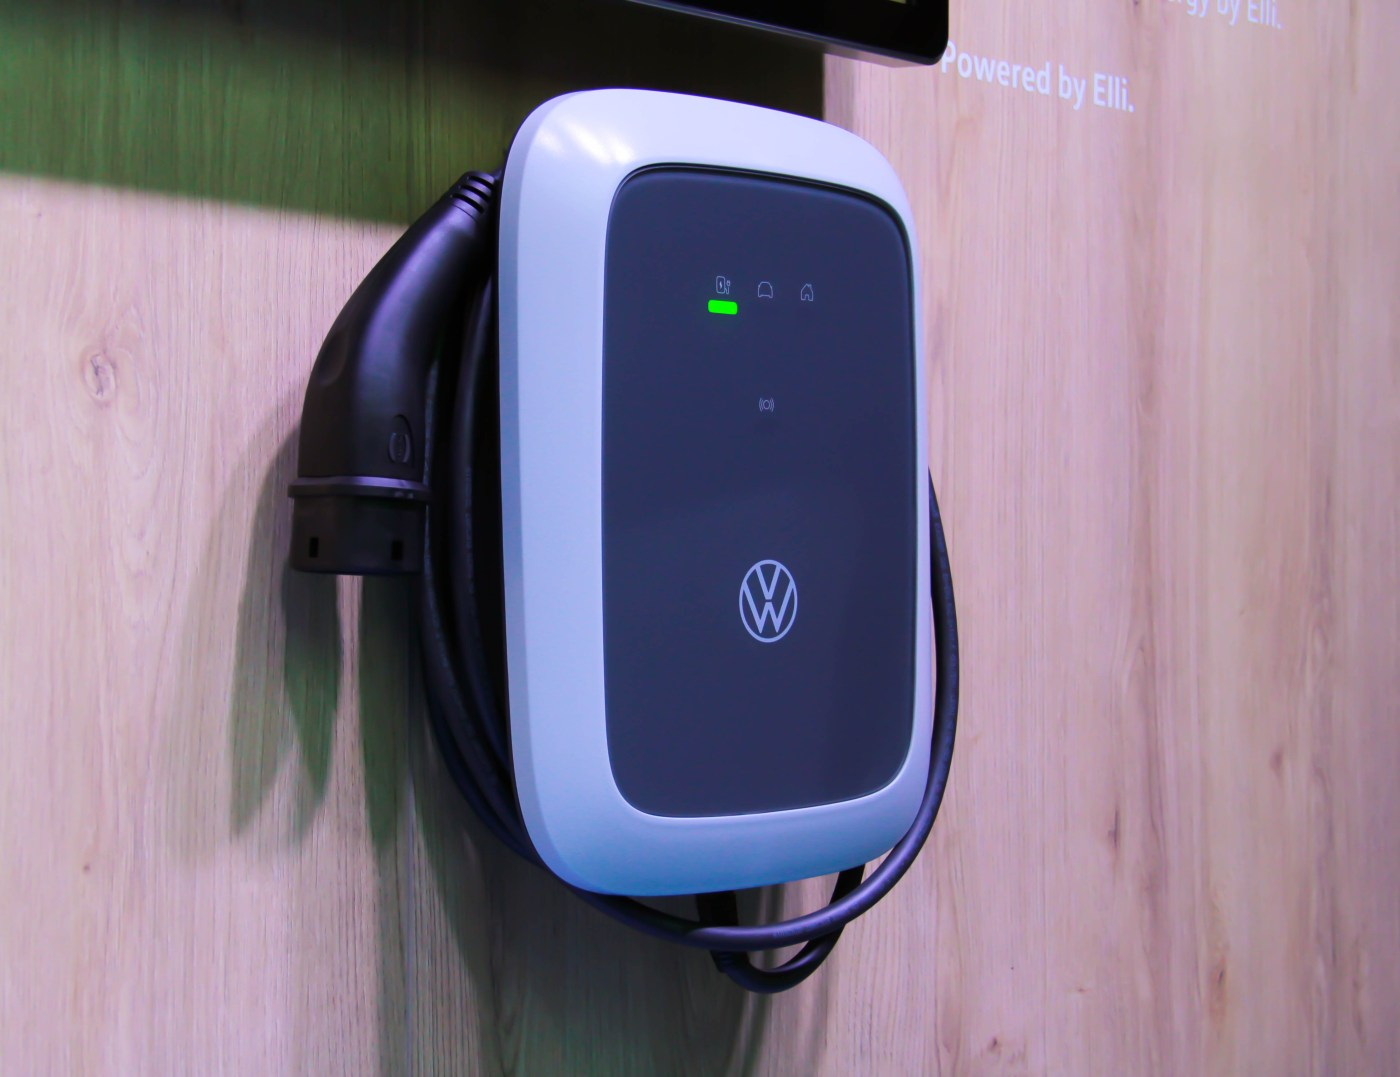 VW Wallbox 11 kW